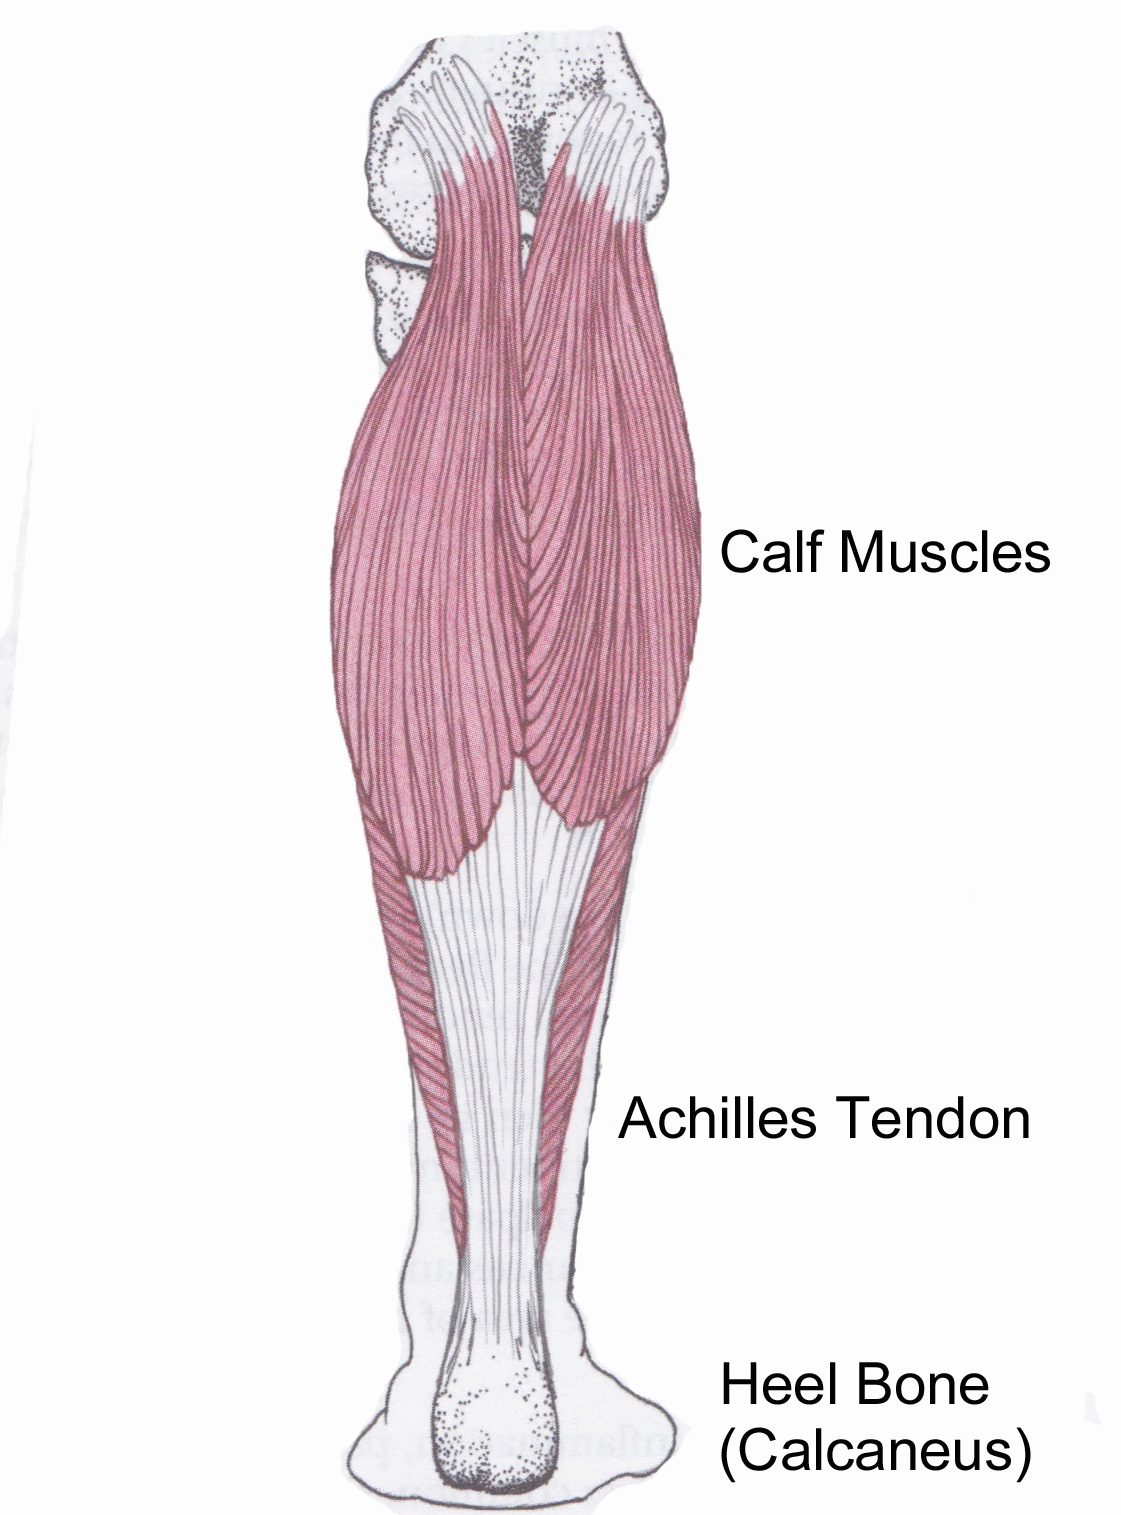 Thomas\' Blog: ACHILLES TENDON